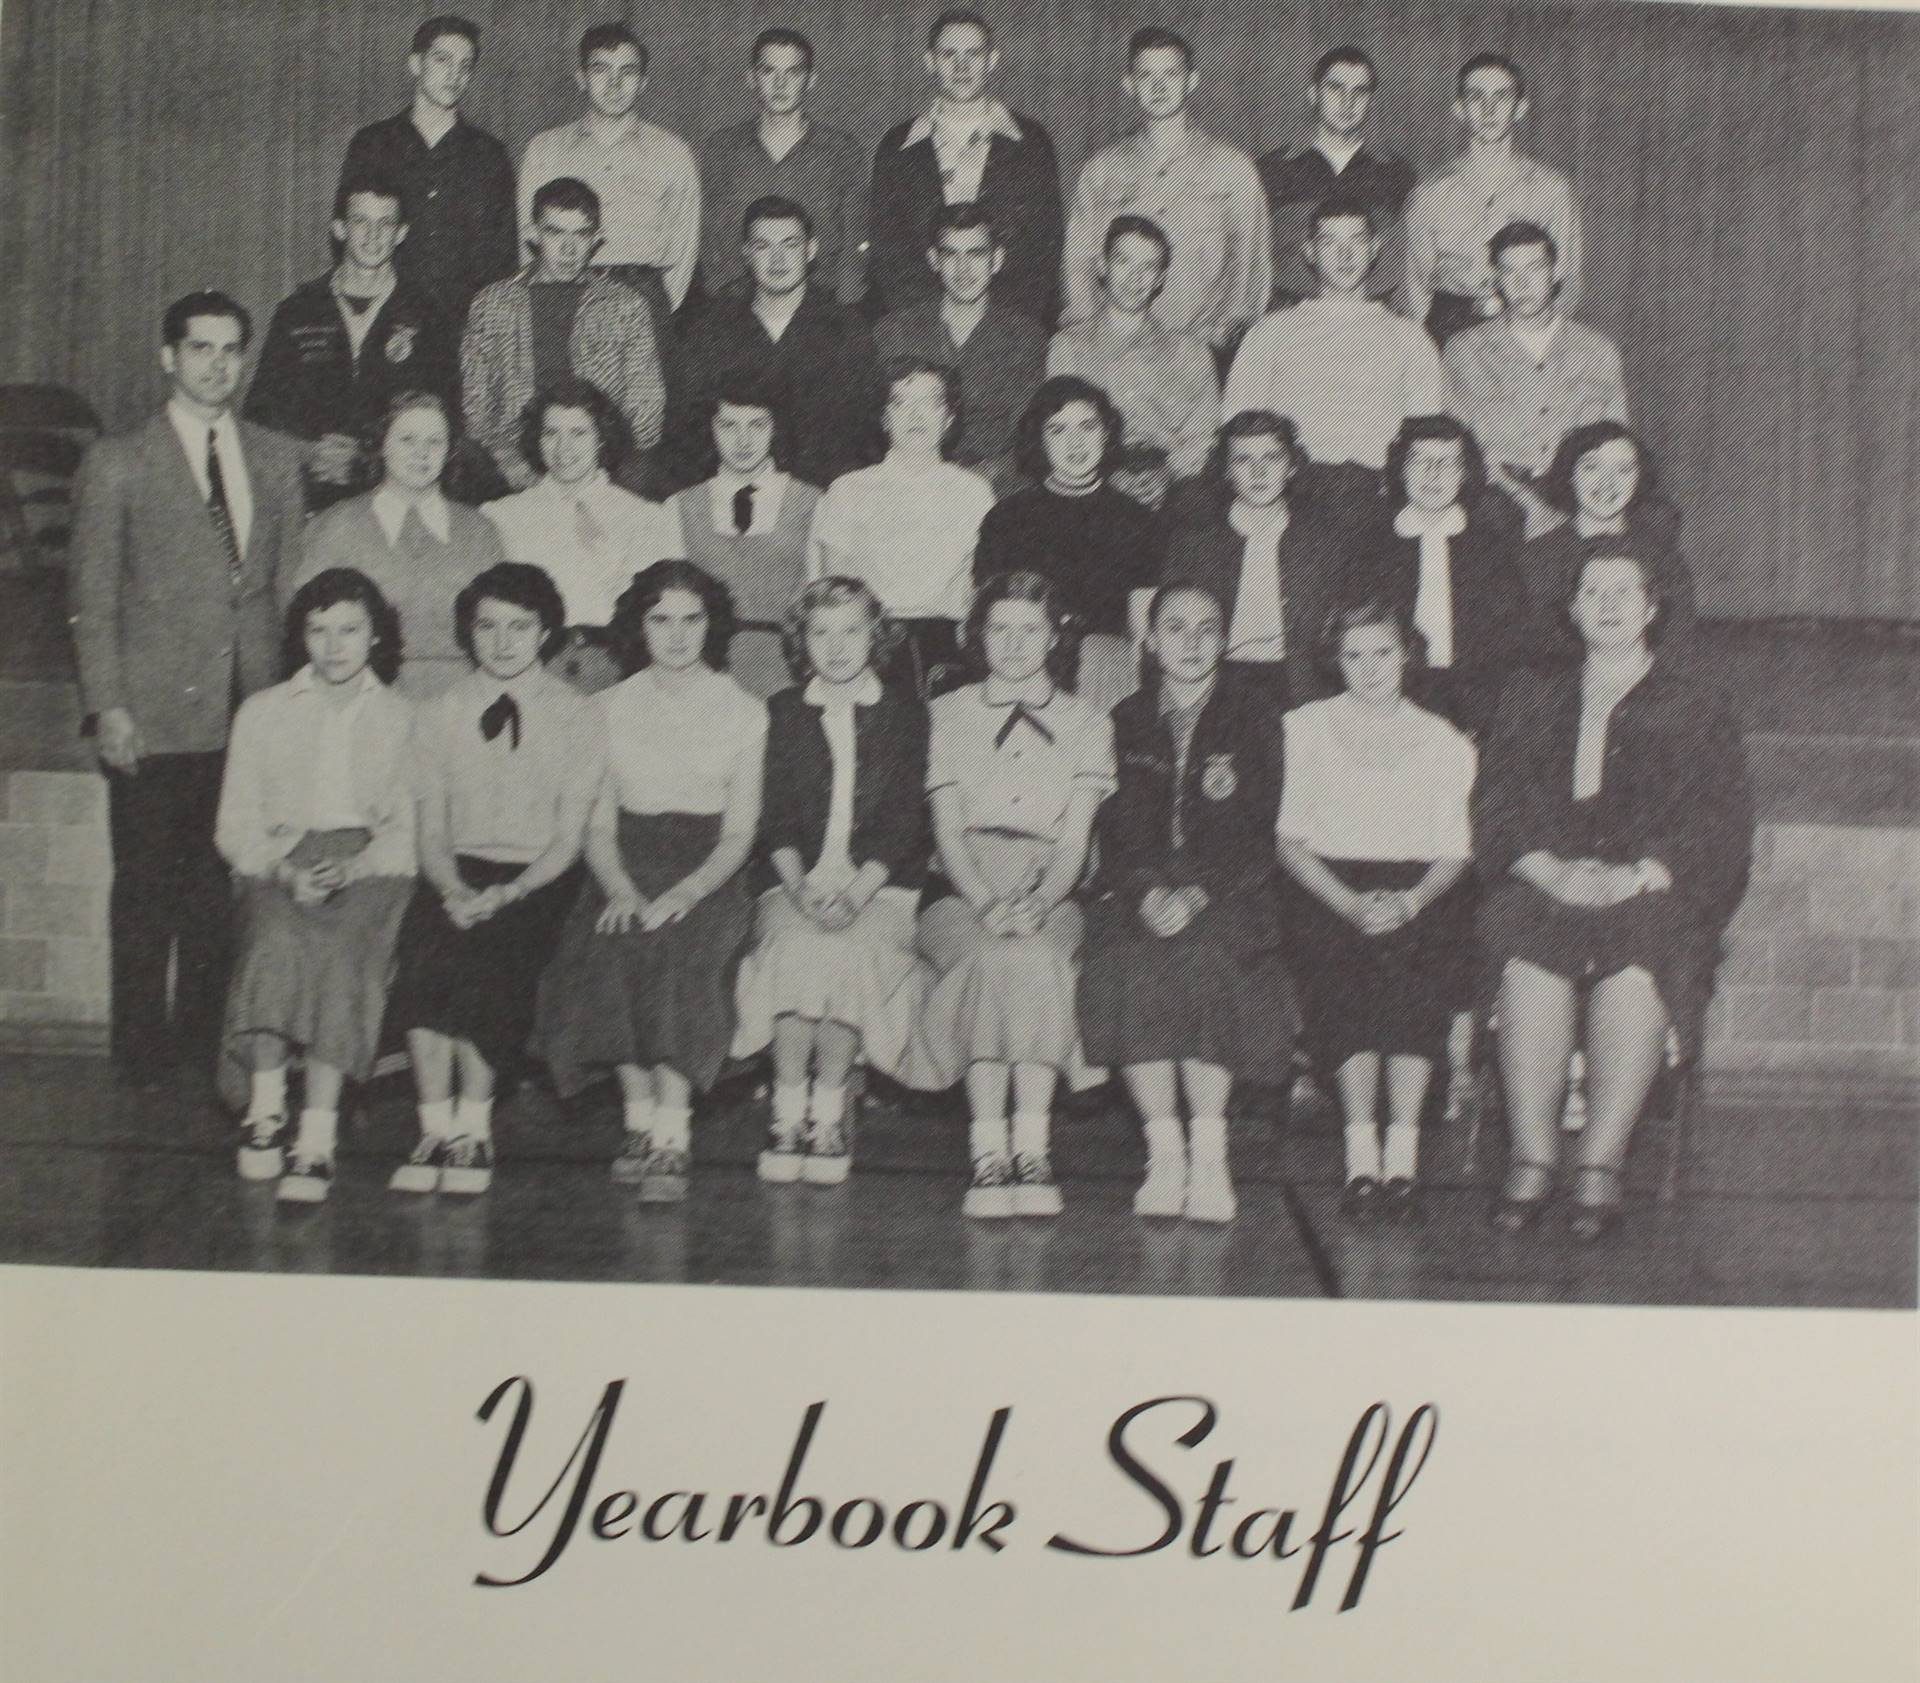 1953 yearbook staff